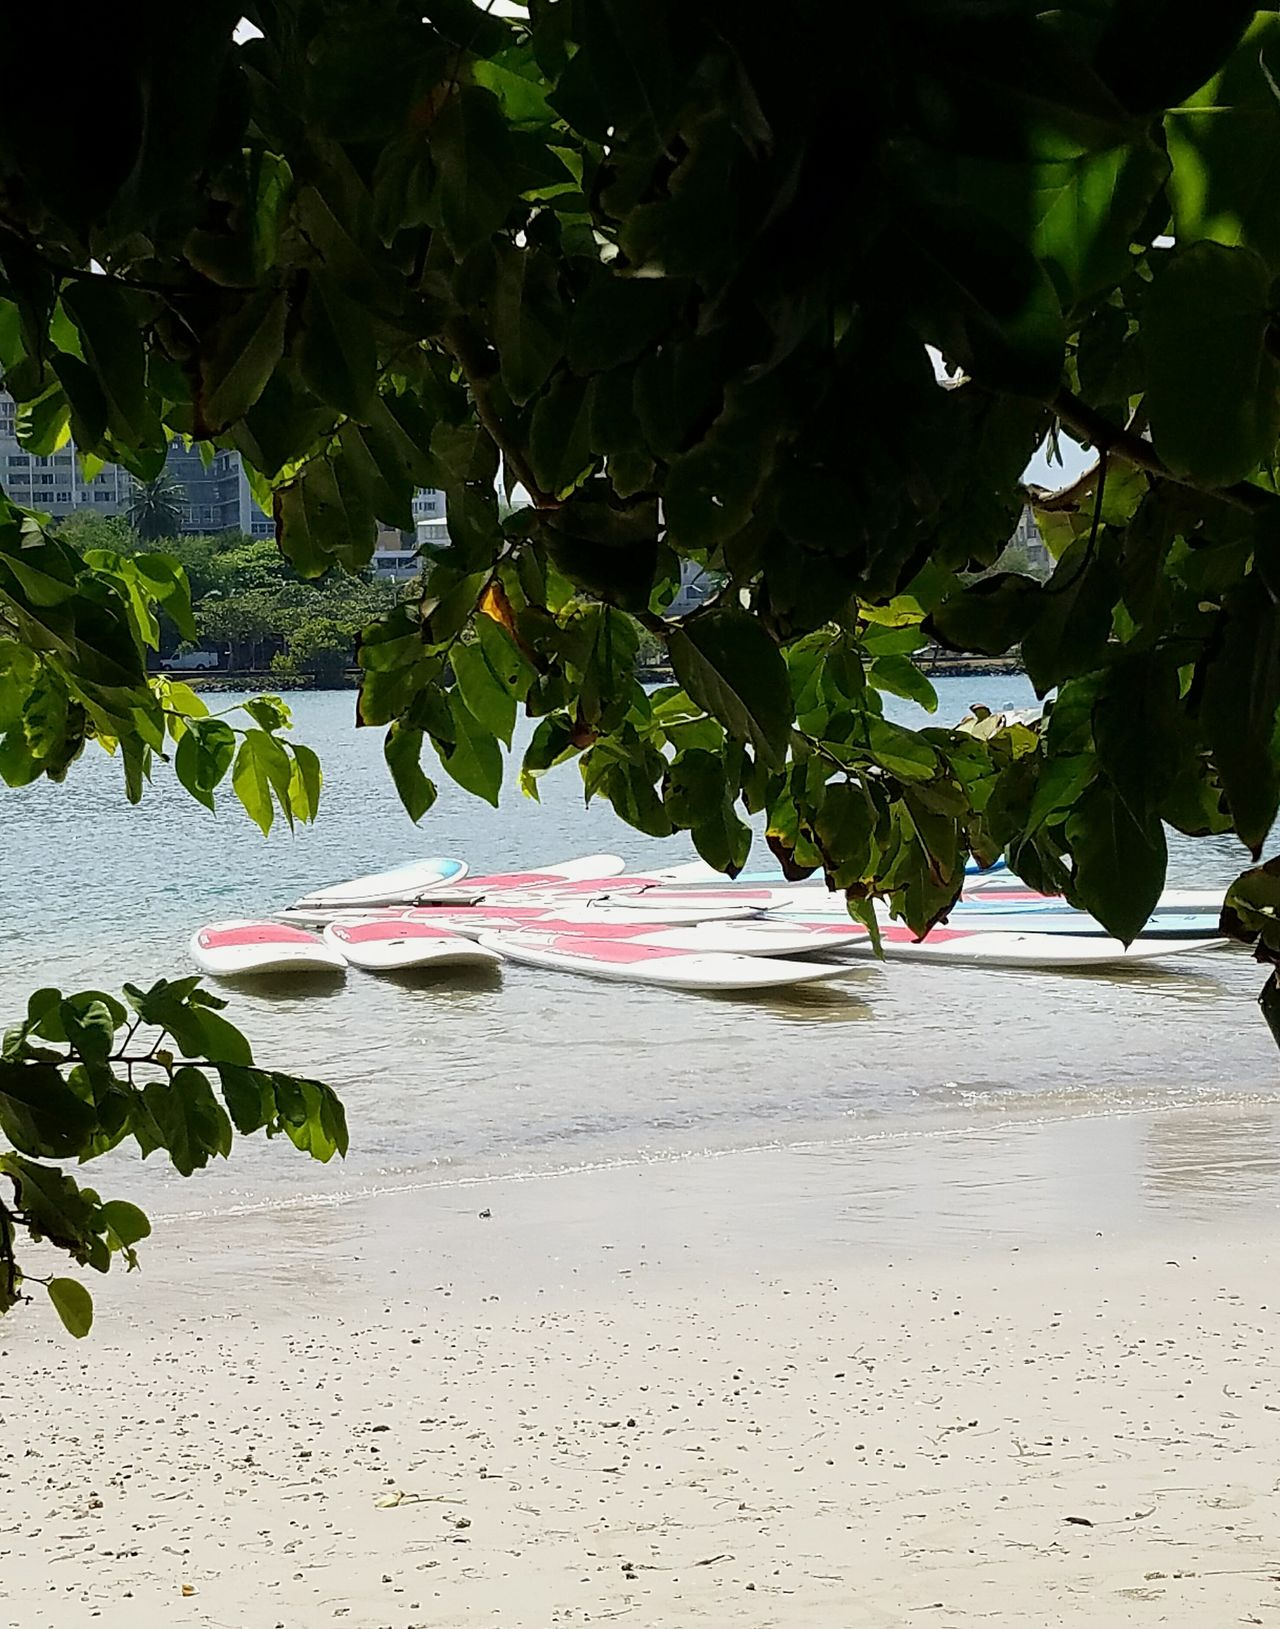 Beach Nature Water Leaf Outdoors Beauty In Nature Branch Scenics Freshness No People Shapes And Colour Perspective Floating On Water Aquatic Sport Urban Exploration Pedalboard Adventure Open Edit Leisure Activity Waterscape Water Sports Looking To The Other Side Pattern Light And Shadow San Juan PR